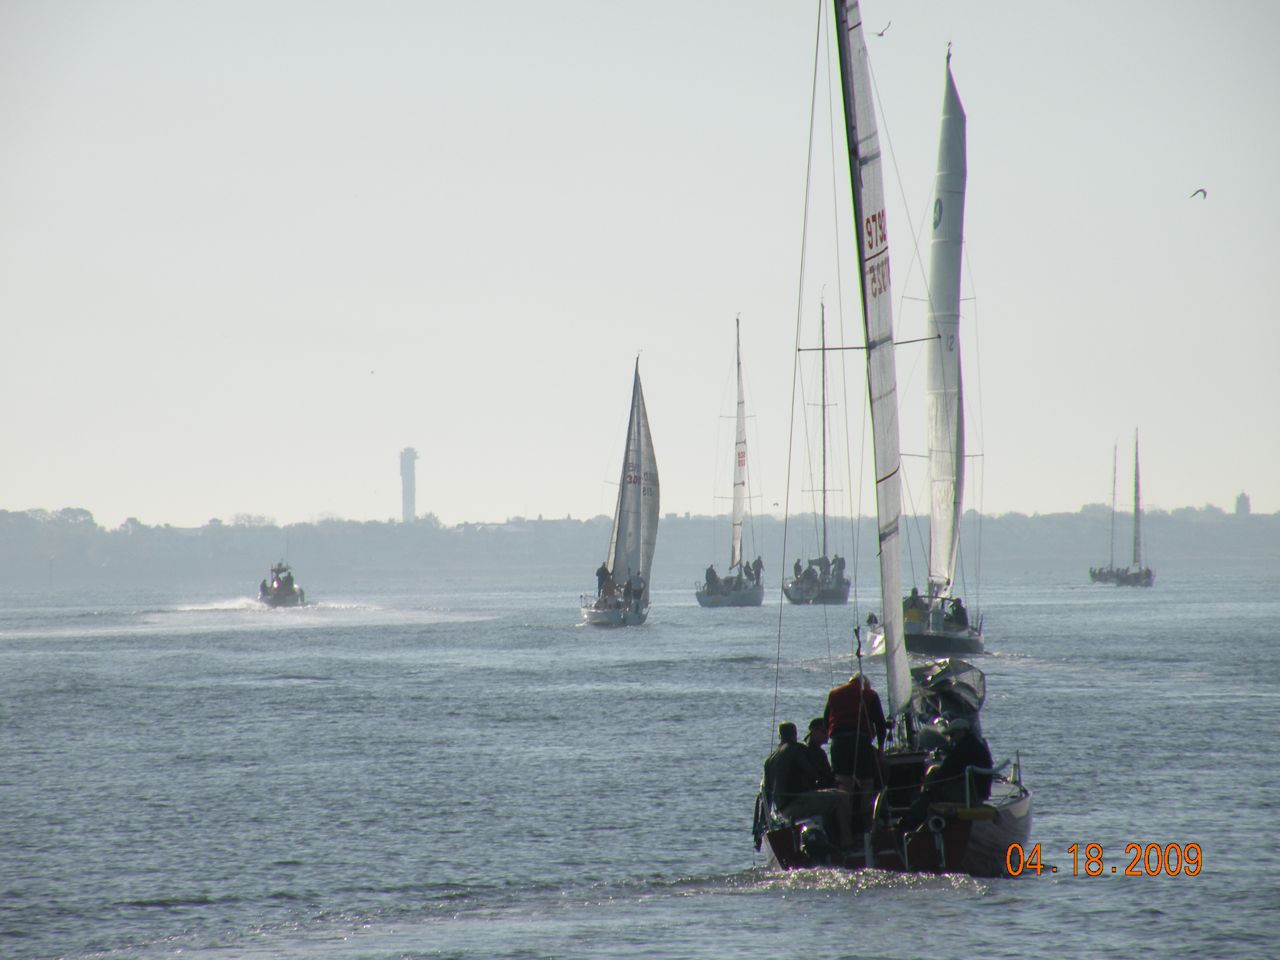 Competitors leaving early at about 7AM for the race course offshore in Charleston - (c) Copyright 2009